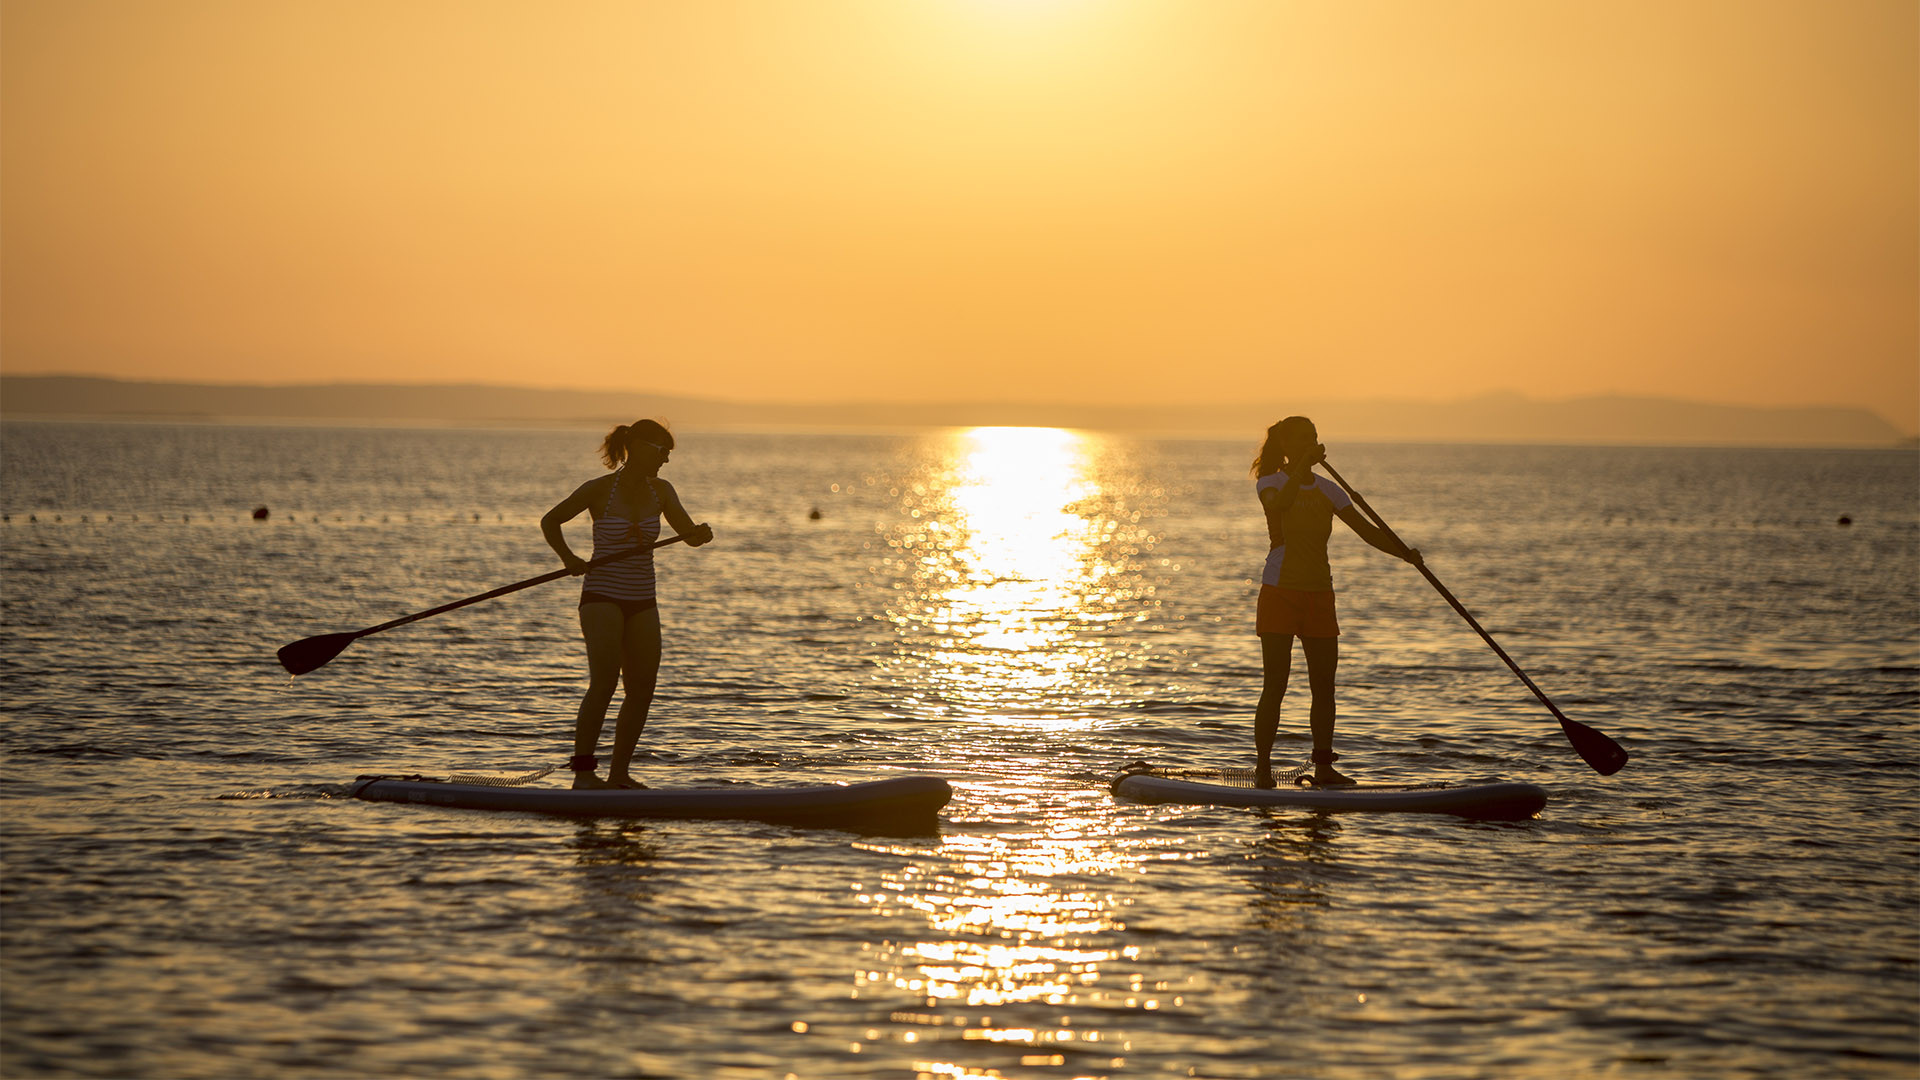 Standup paddle boarding with Neilson at Alana Beach Club, Croatia